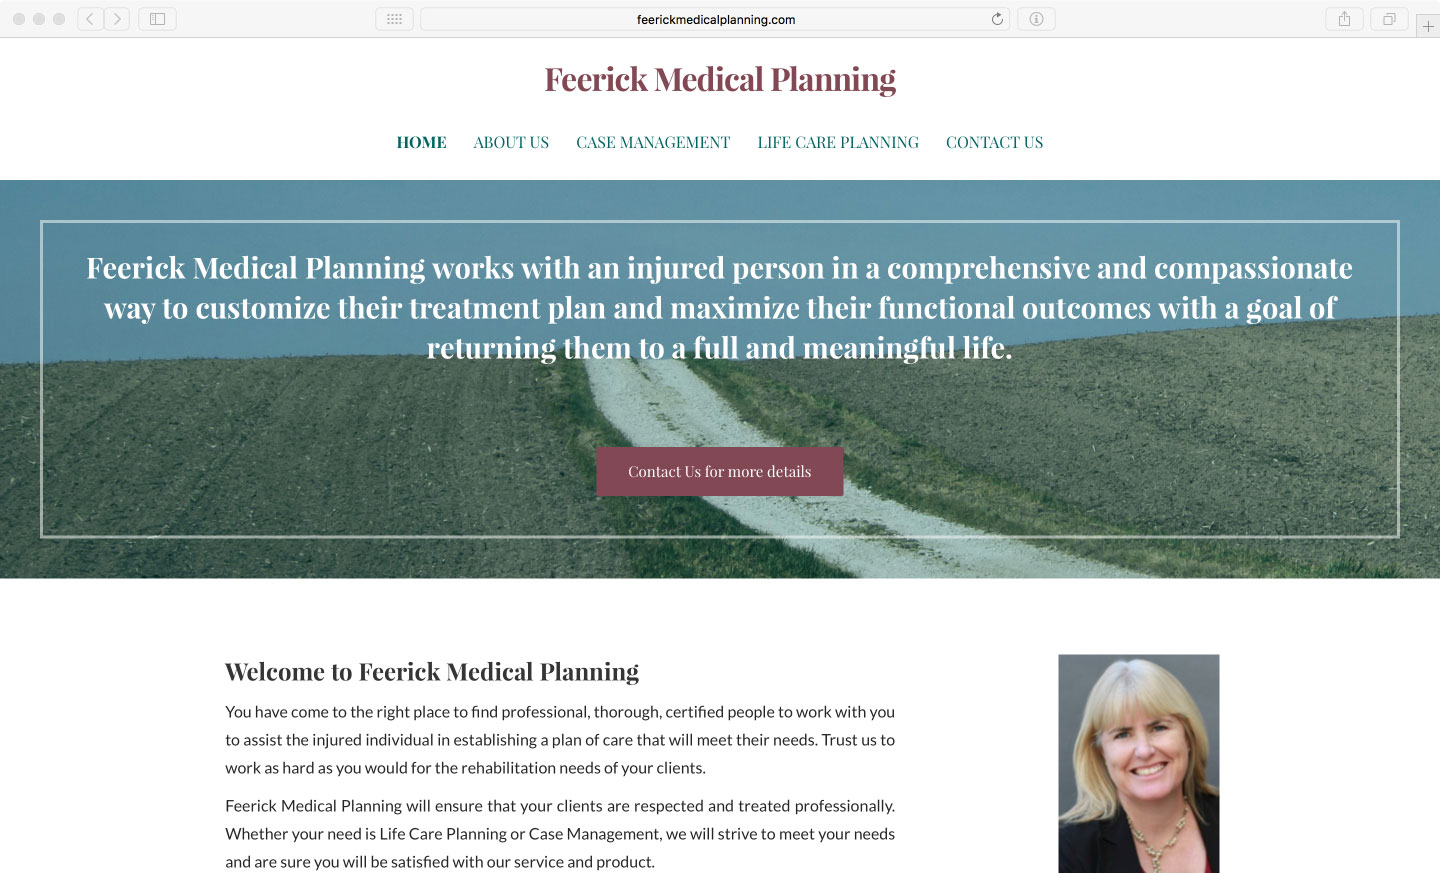 Feerick Medical Planning